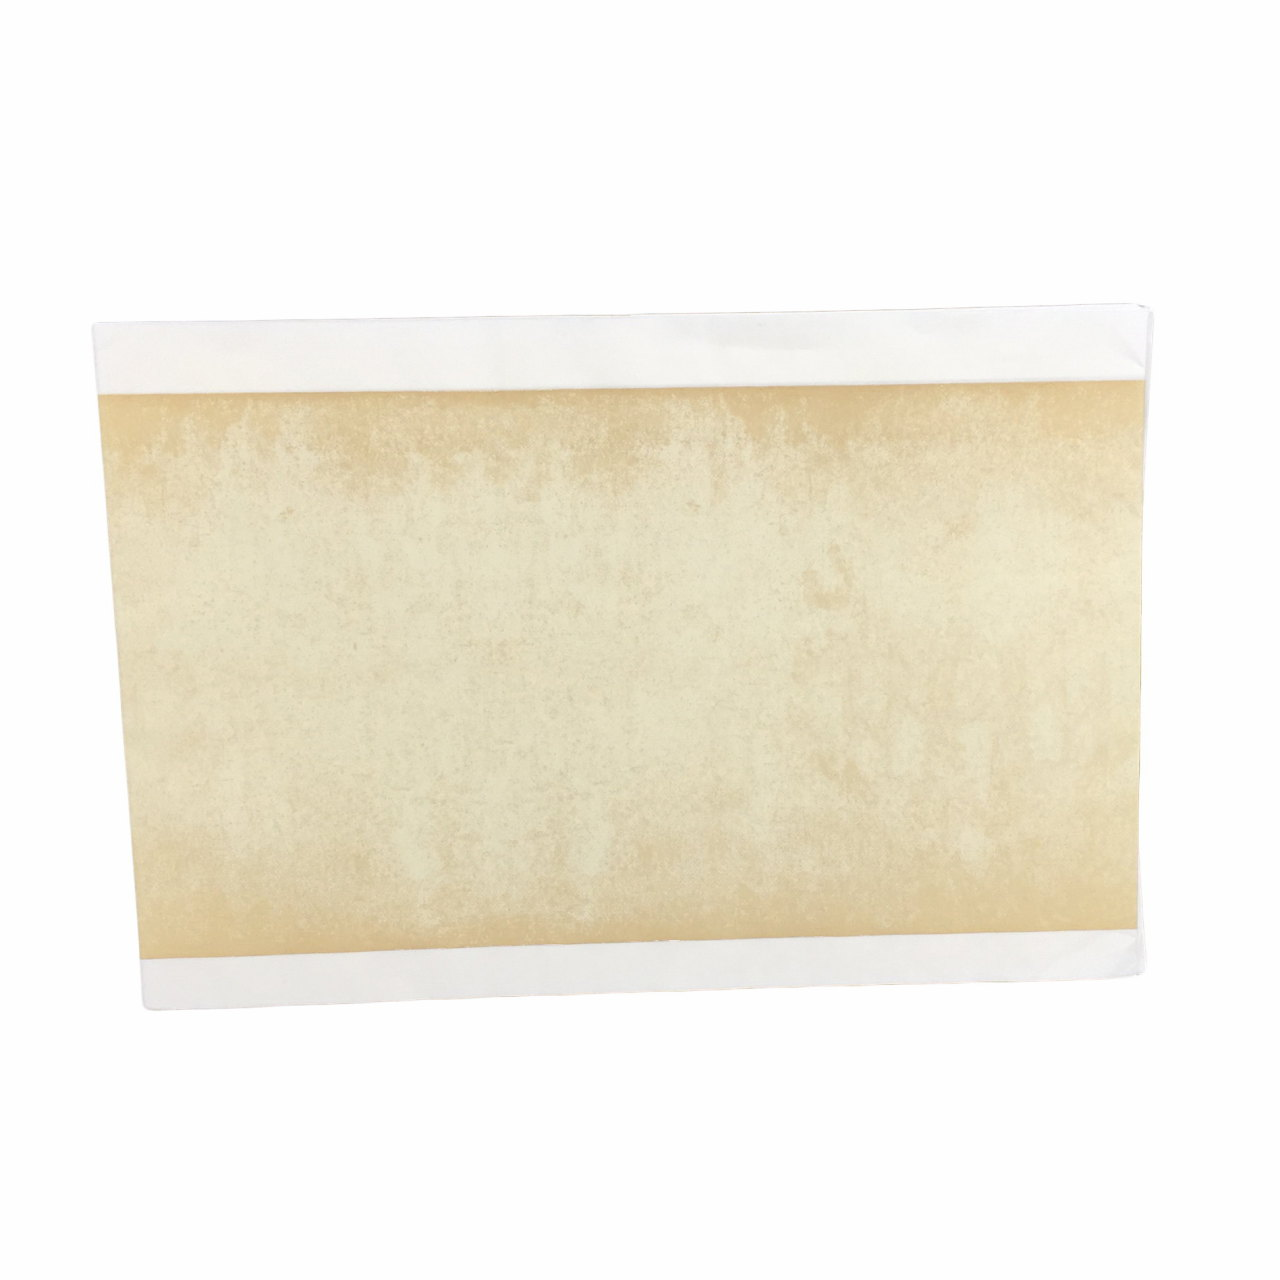 Inkston decorated xuan paper pack ldxp 012 from eur516 for Decorative paper